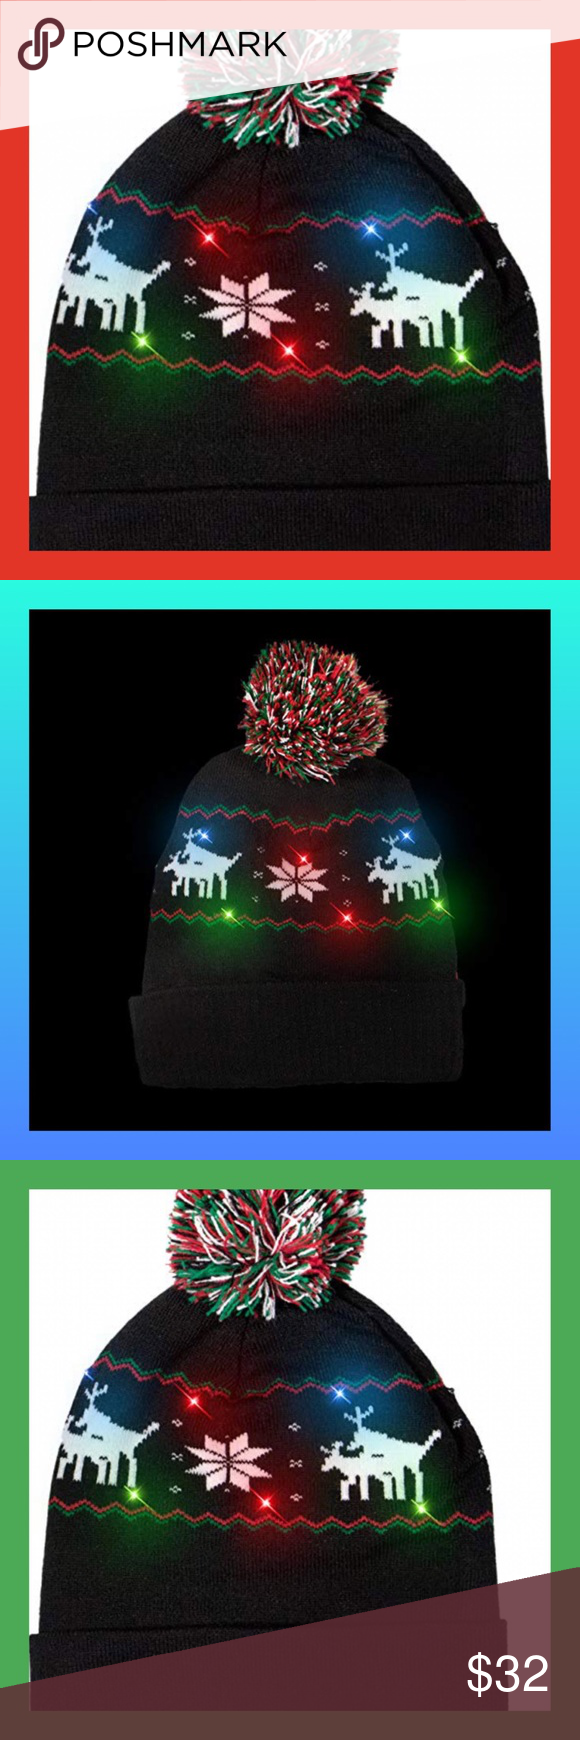 cf0467ddd450d 🎄NEW🎄LED Light-Up Holiday Beanie IMPORTANT  To activate the lights you